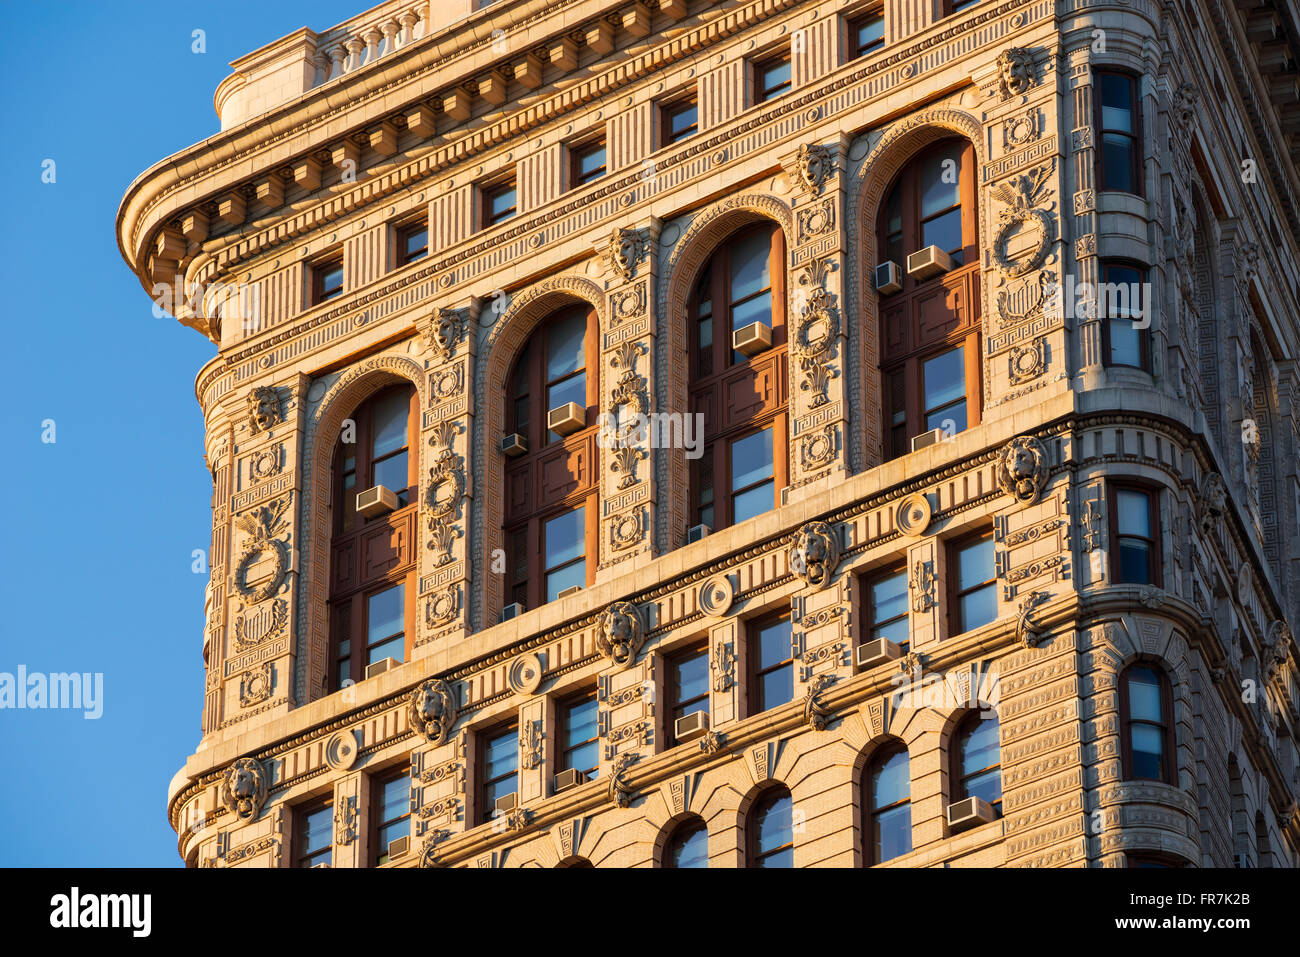 Flatiron Building (Beaux-Arts style) south facade at sunset showcasing intricate terracotta ornaments. Midtown, - Stock Image